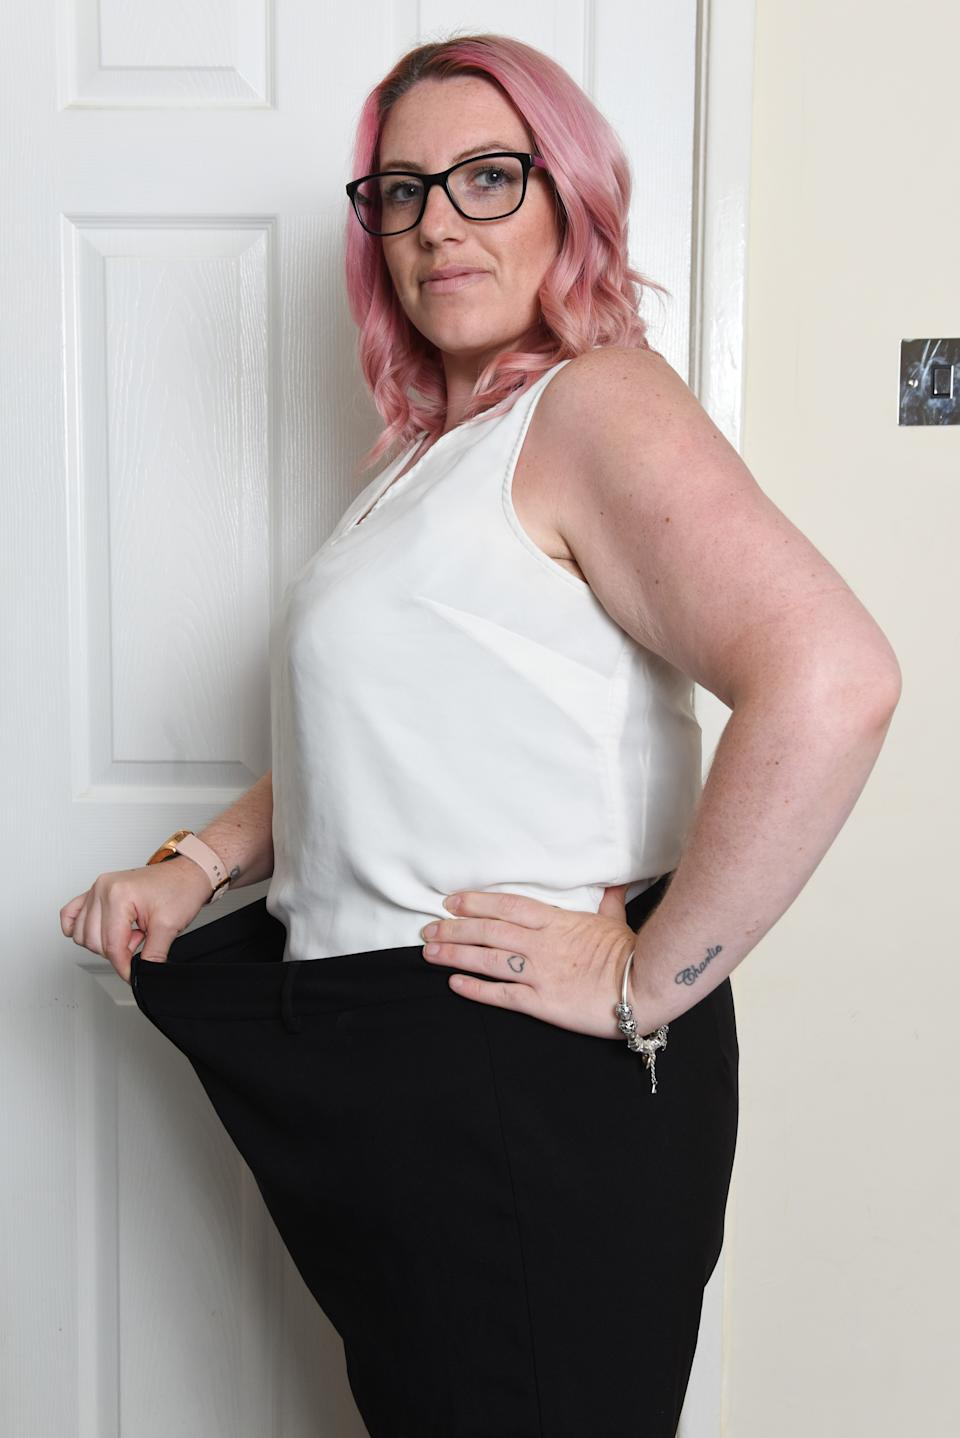 Ashleigh with an old pair of trousers) An obese bridesmaid has dropped six stone after a 'horrific' photo appeared online which made her look nine month pregnant. Ashleigh Bell, 32, says the photo changed her life and she suddenly realised that her size 24 waistline couldn't balloon any further. The mum-of-three spotted the photo on Facebook last July six months after her sister's wedding in 2018. Ashleigh says she felt 'mortified' by the awful image - which she says made her look pregnant - and actually apologised to her sister for being obese on her special day. SEE CATERS COPY